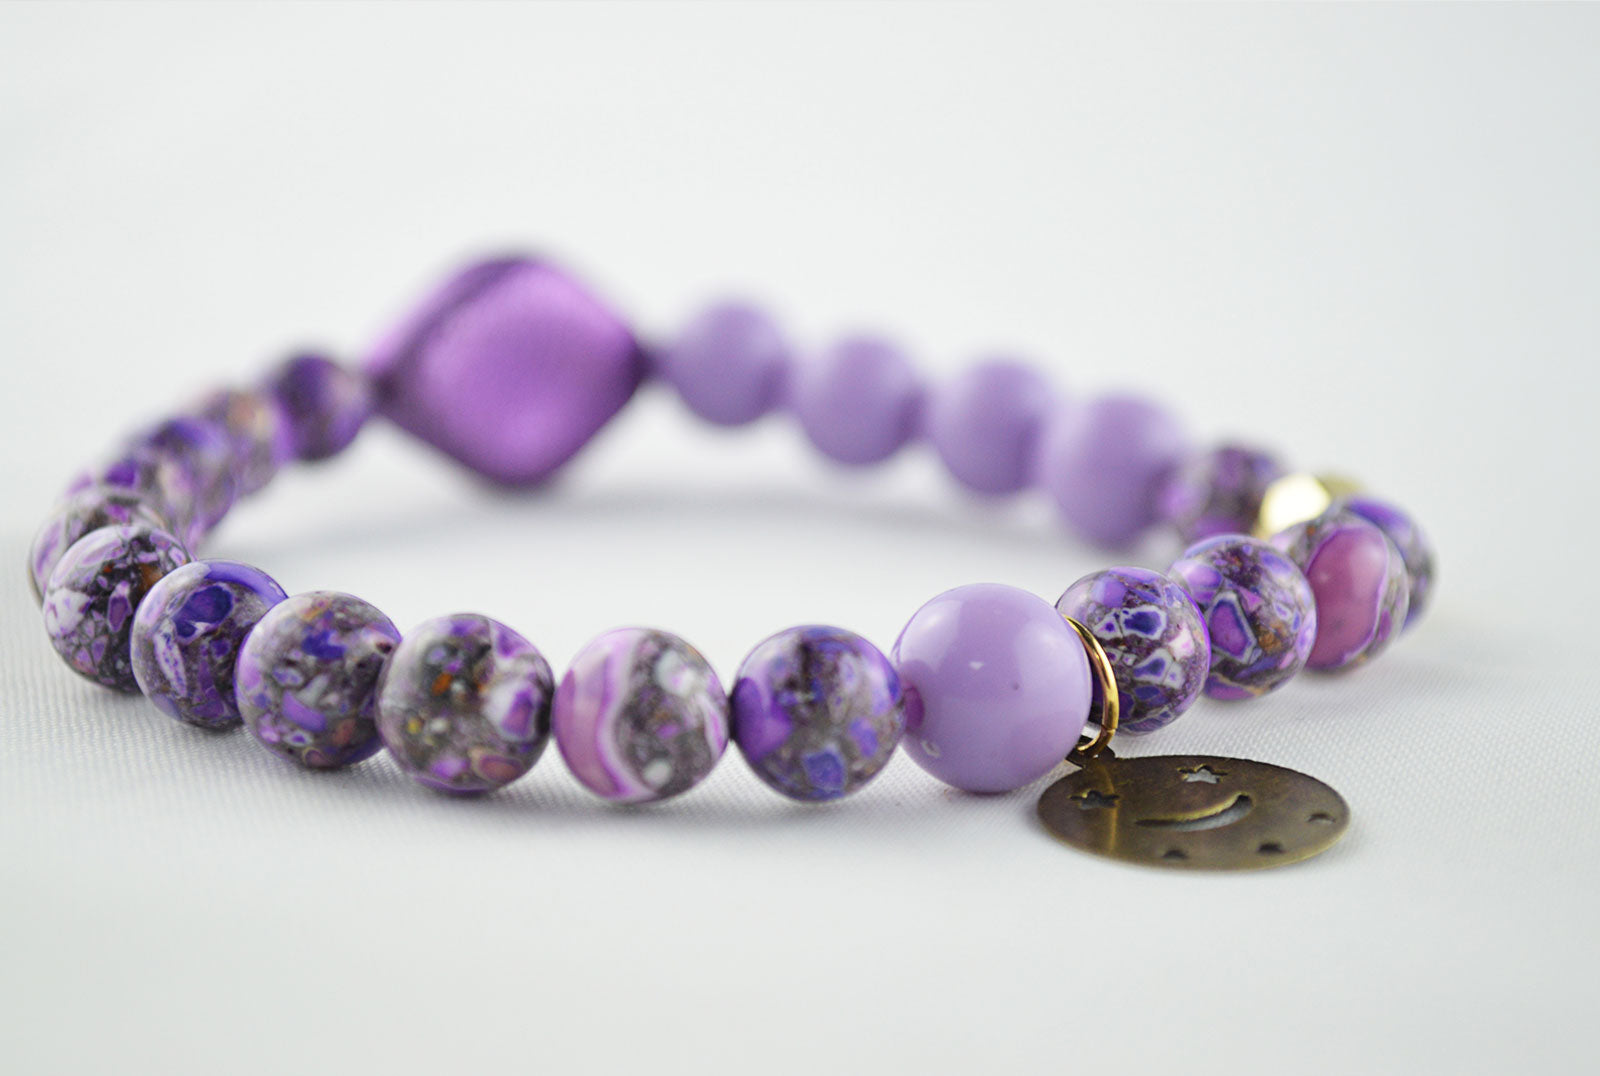 products bird purple stone ecommerce birdandstone bracelet girls education